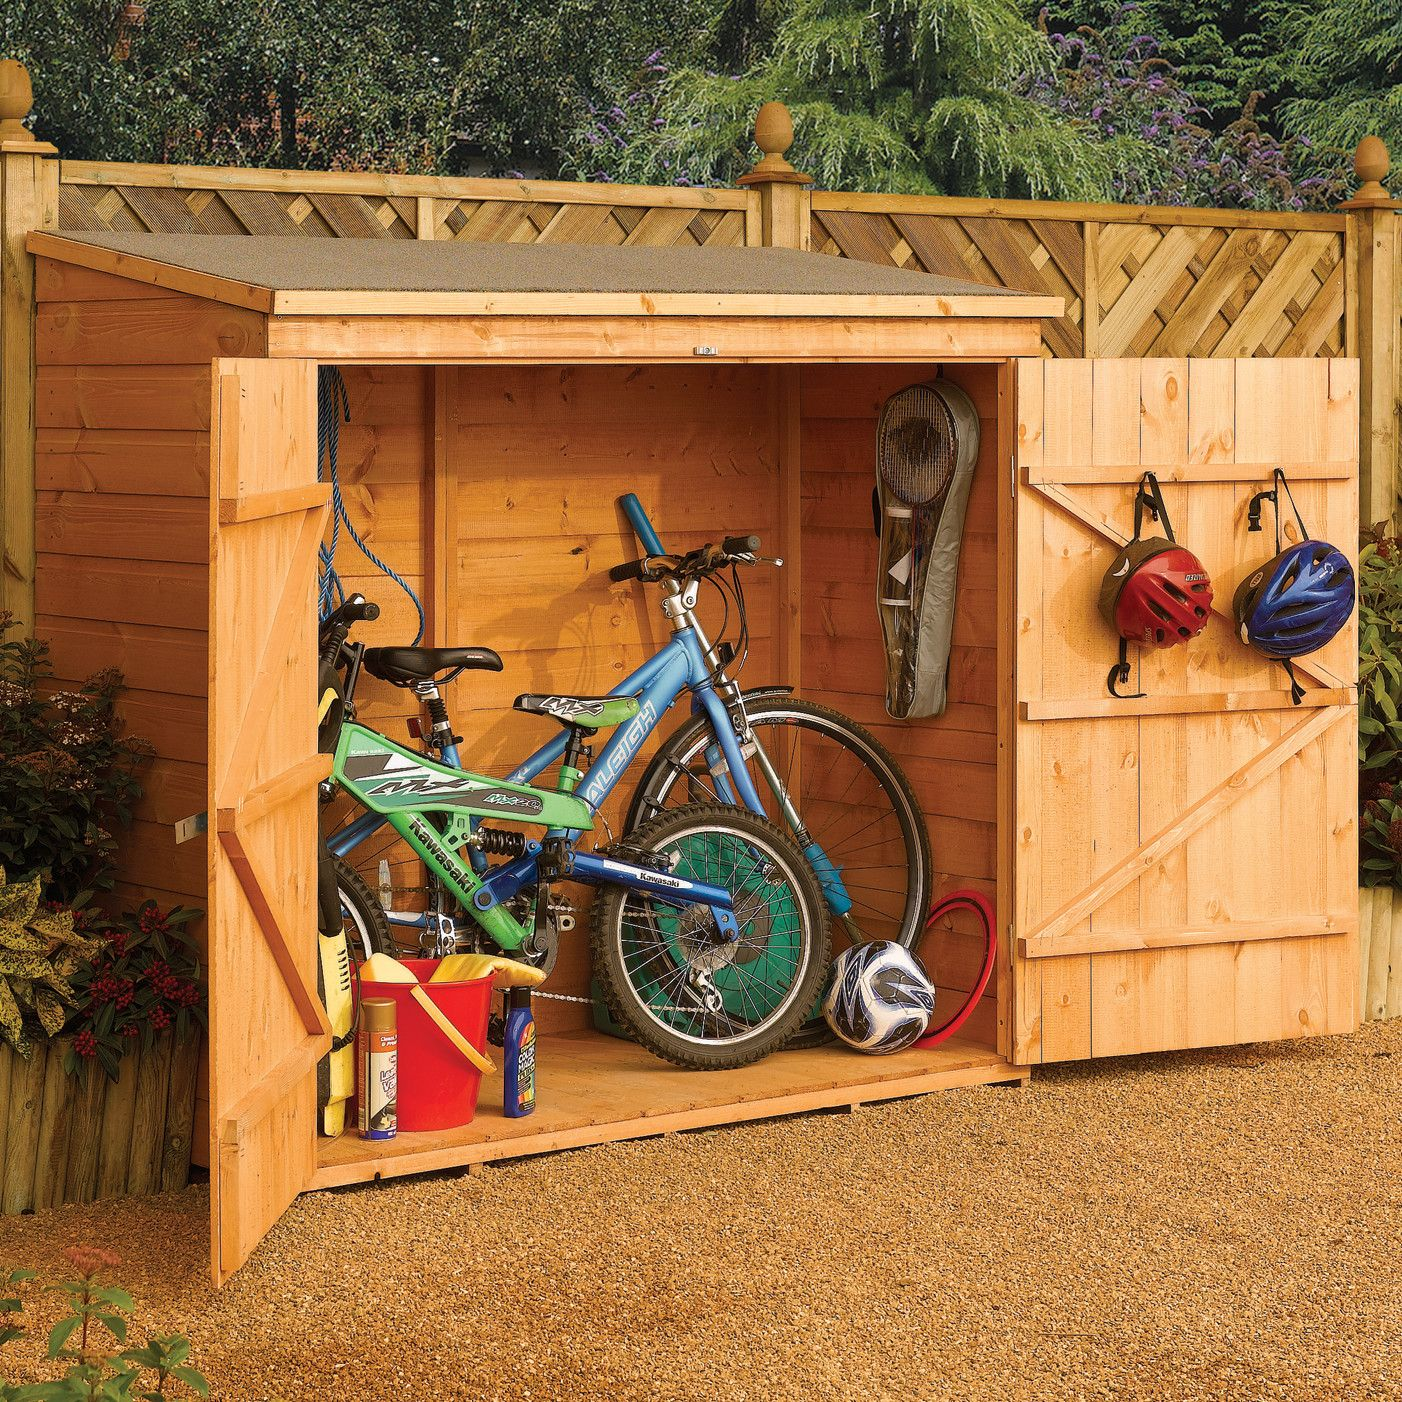 Rowlinson 6 Ft W x 3 Ft D Wood Storage Shed